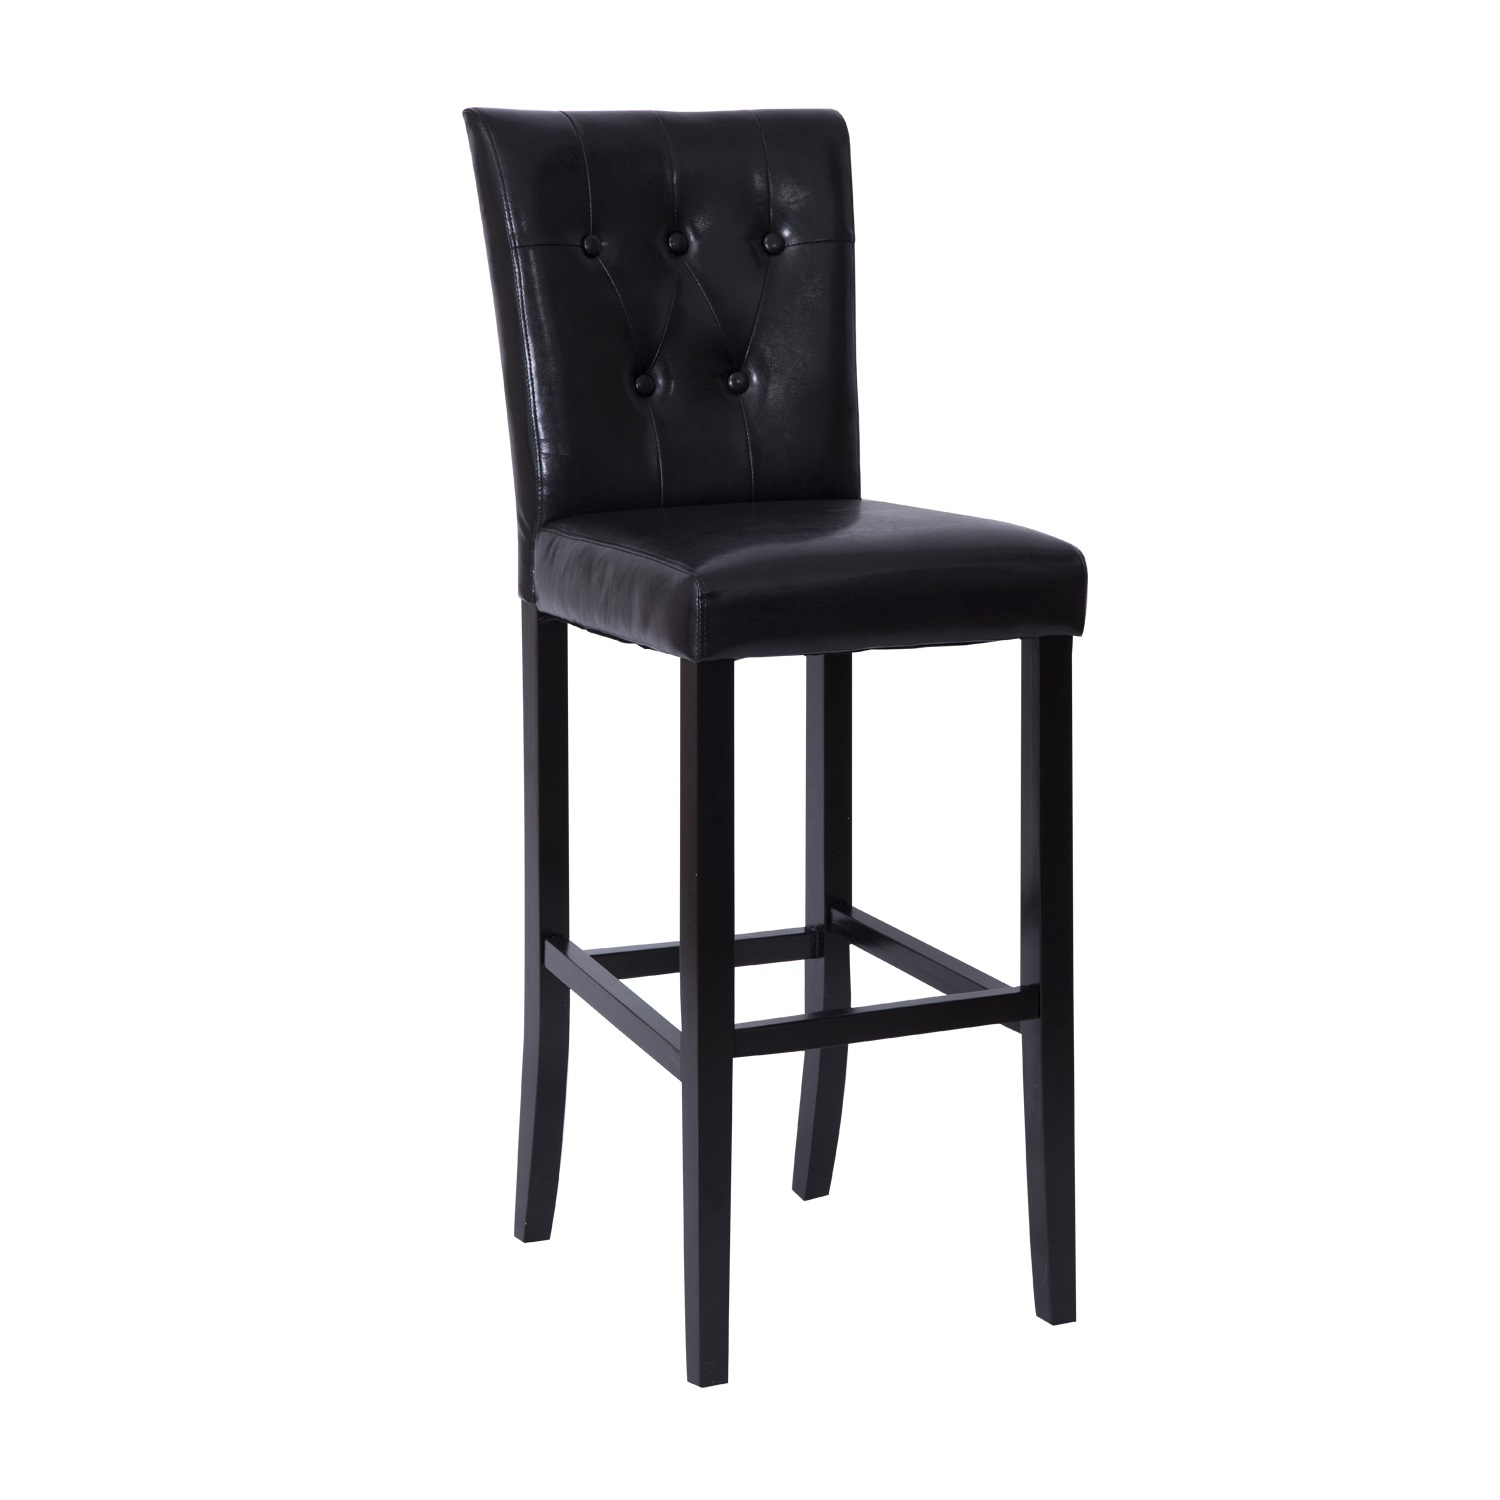 """Hom 41"""" PU Leather Padded Back Counter Stool Pub Chair Dark"""